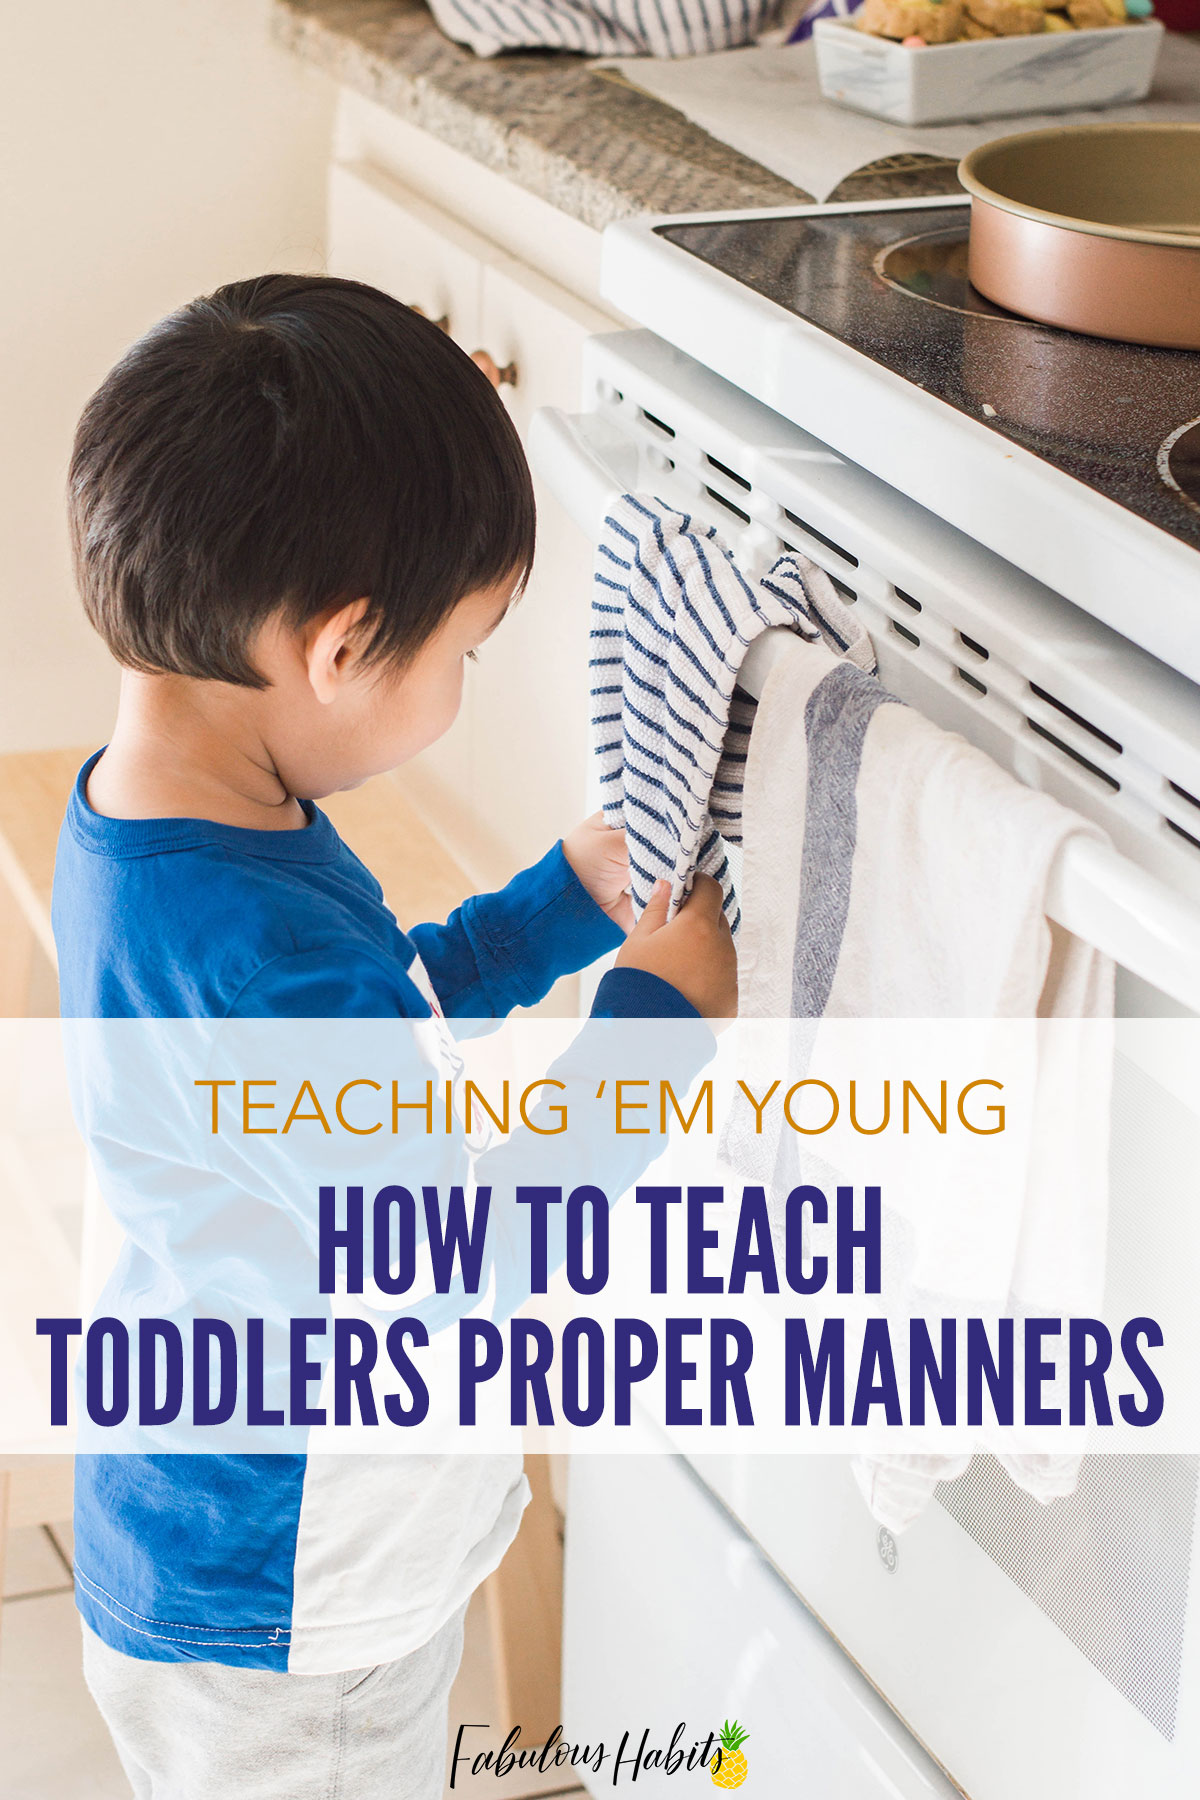 So, how DO you teach toddlers their p's and q's? Start early! Toddler manners are easy to implement - check out our best tips and tricks! #parentingtips